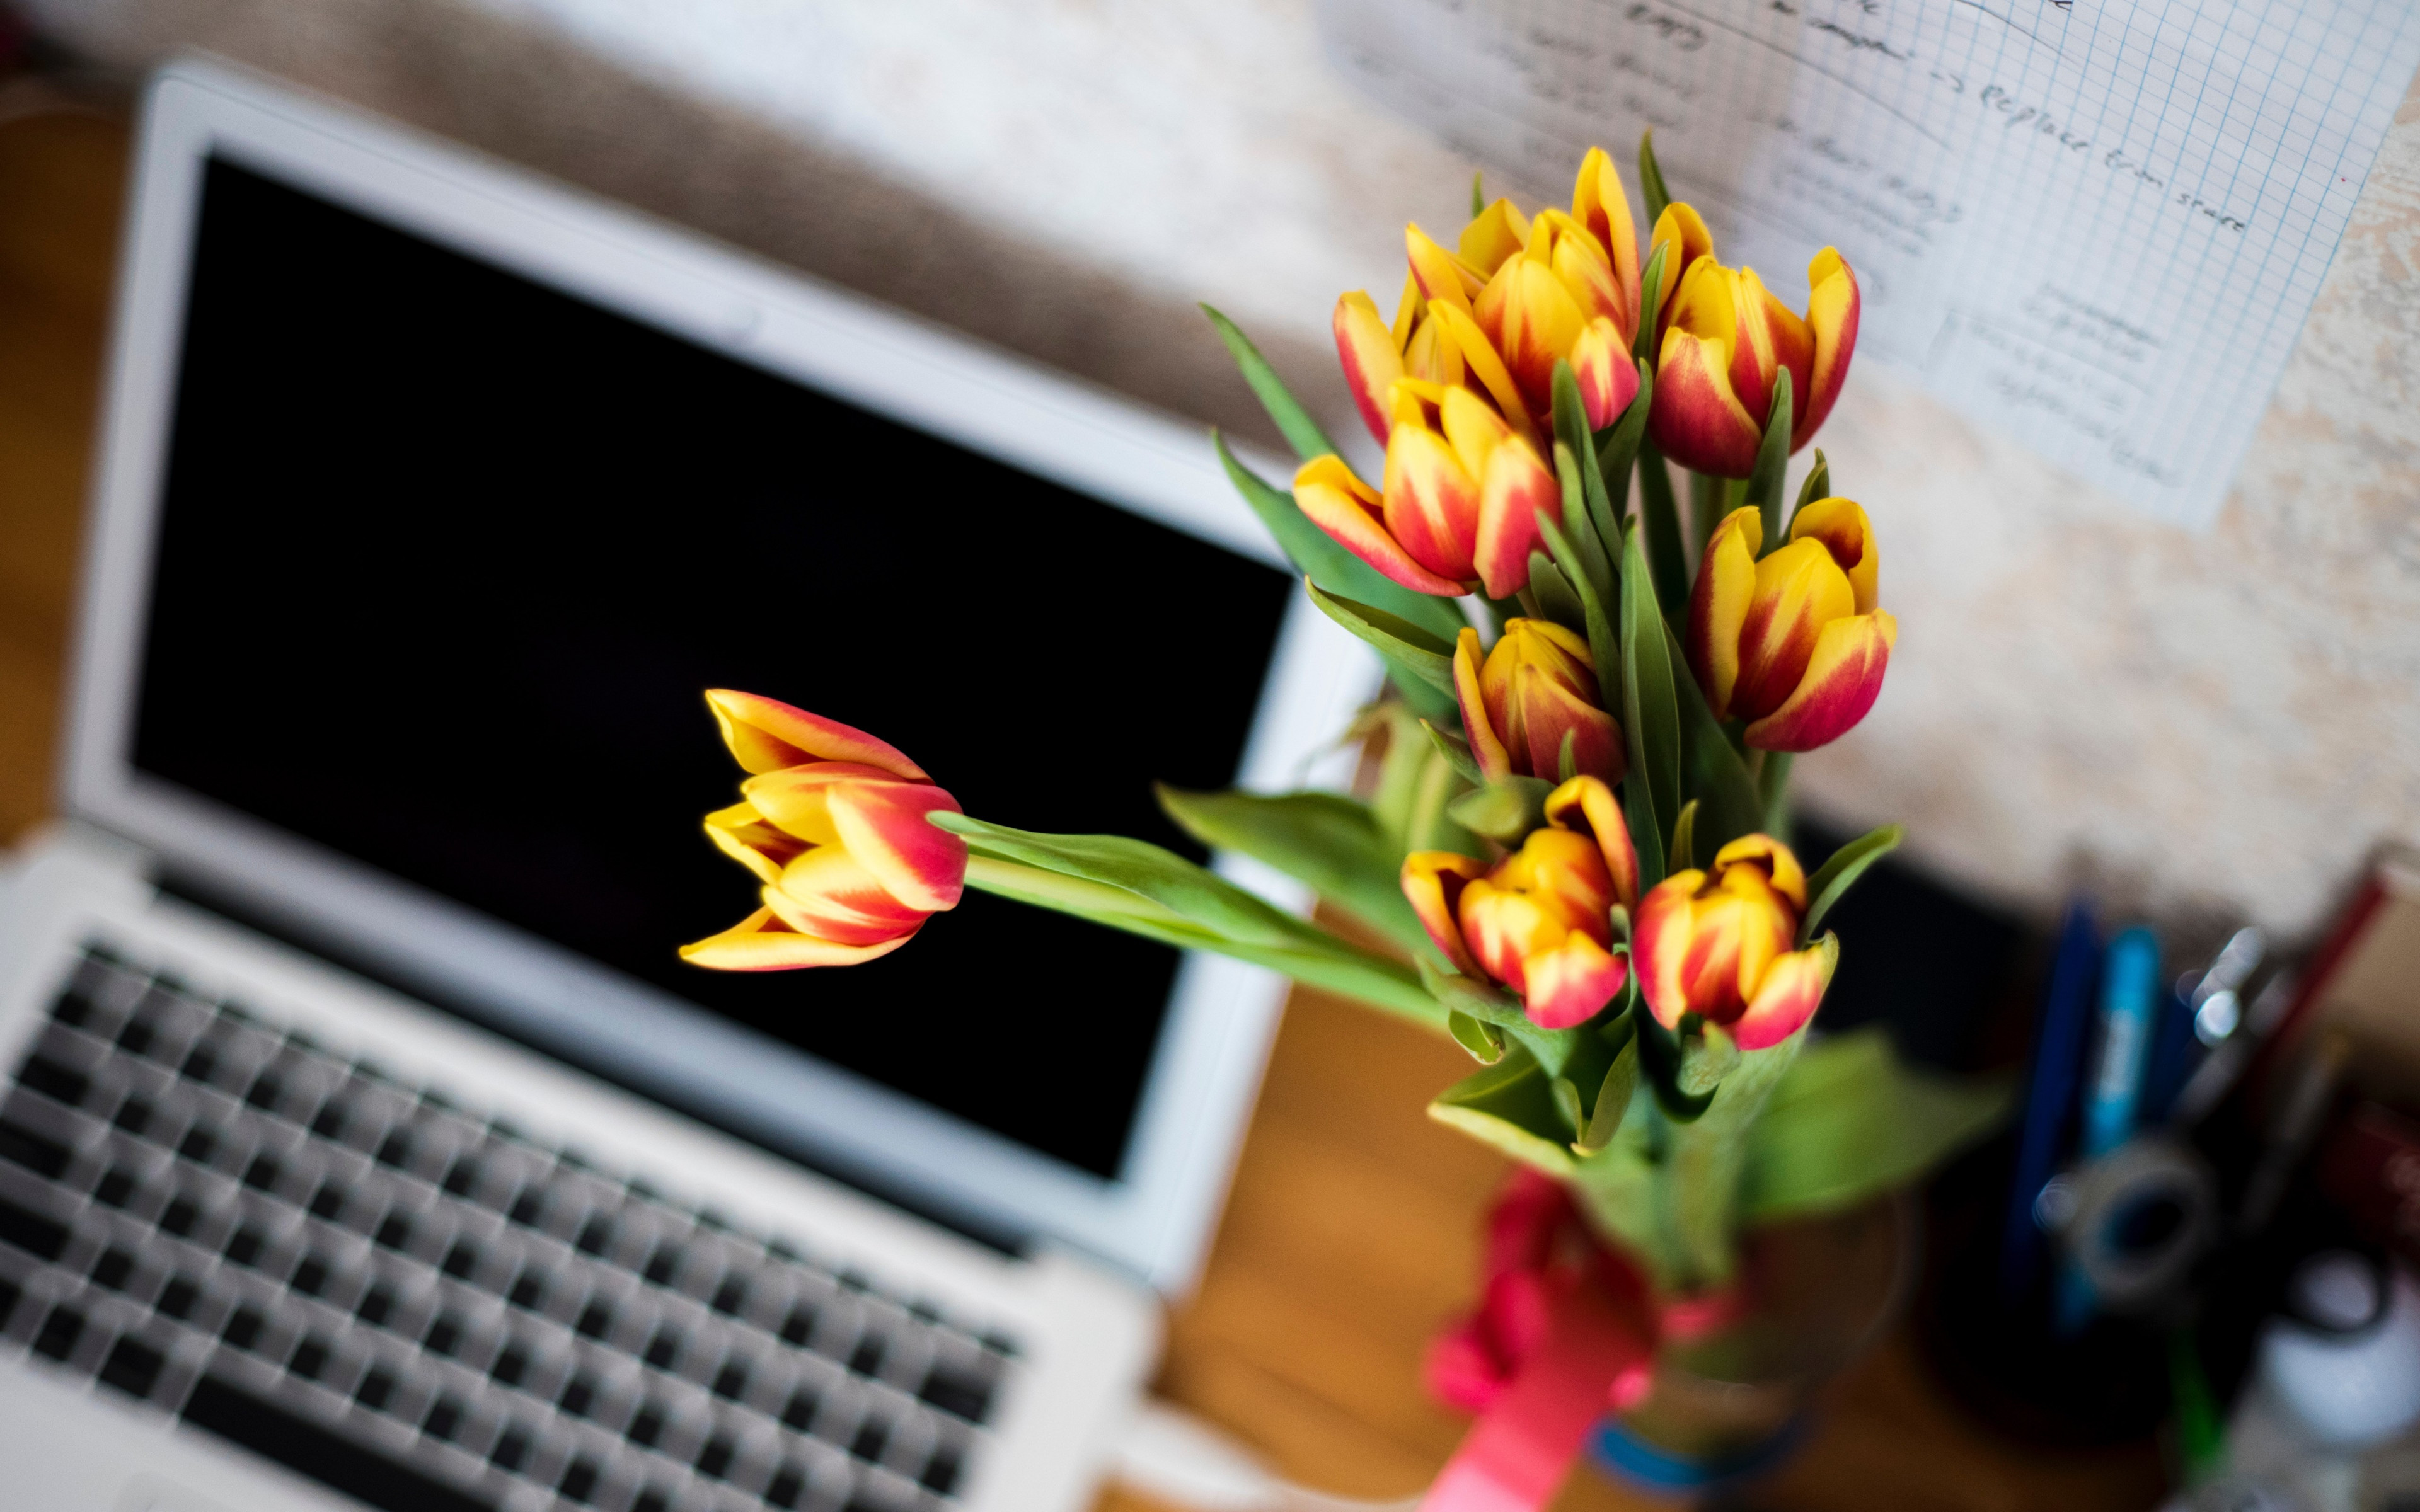 Laptop and tulips bouquet wallpaper 3840x2400